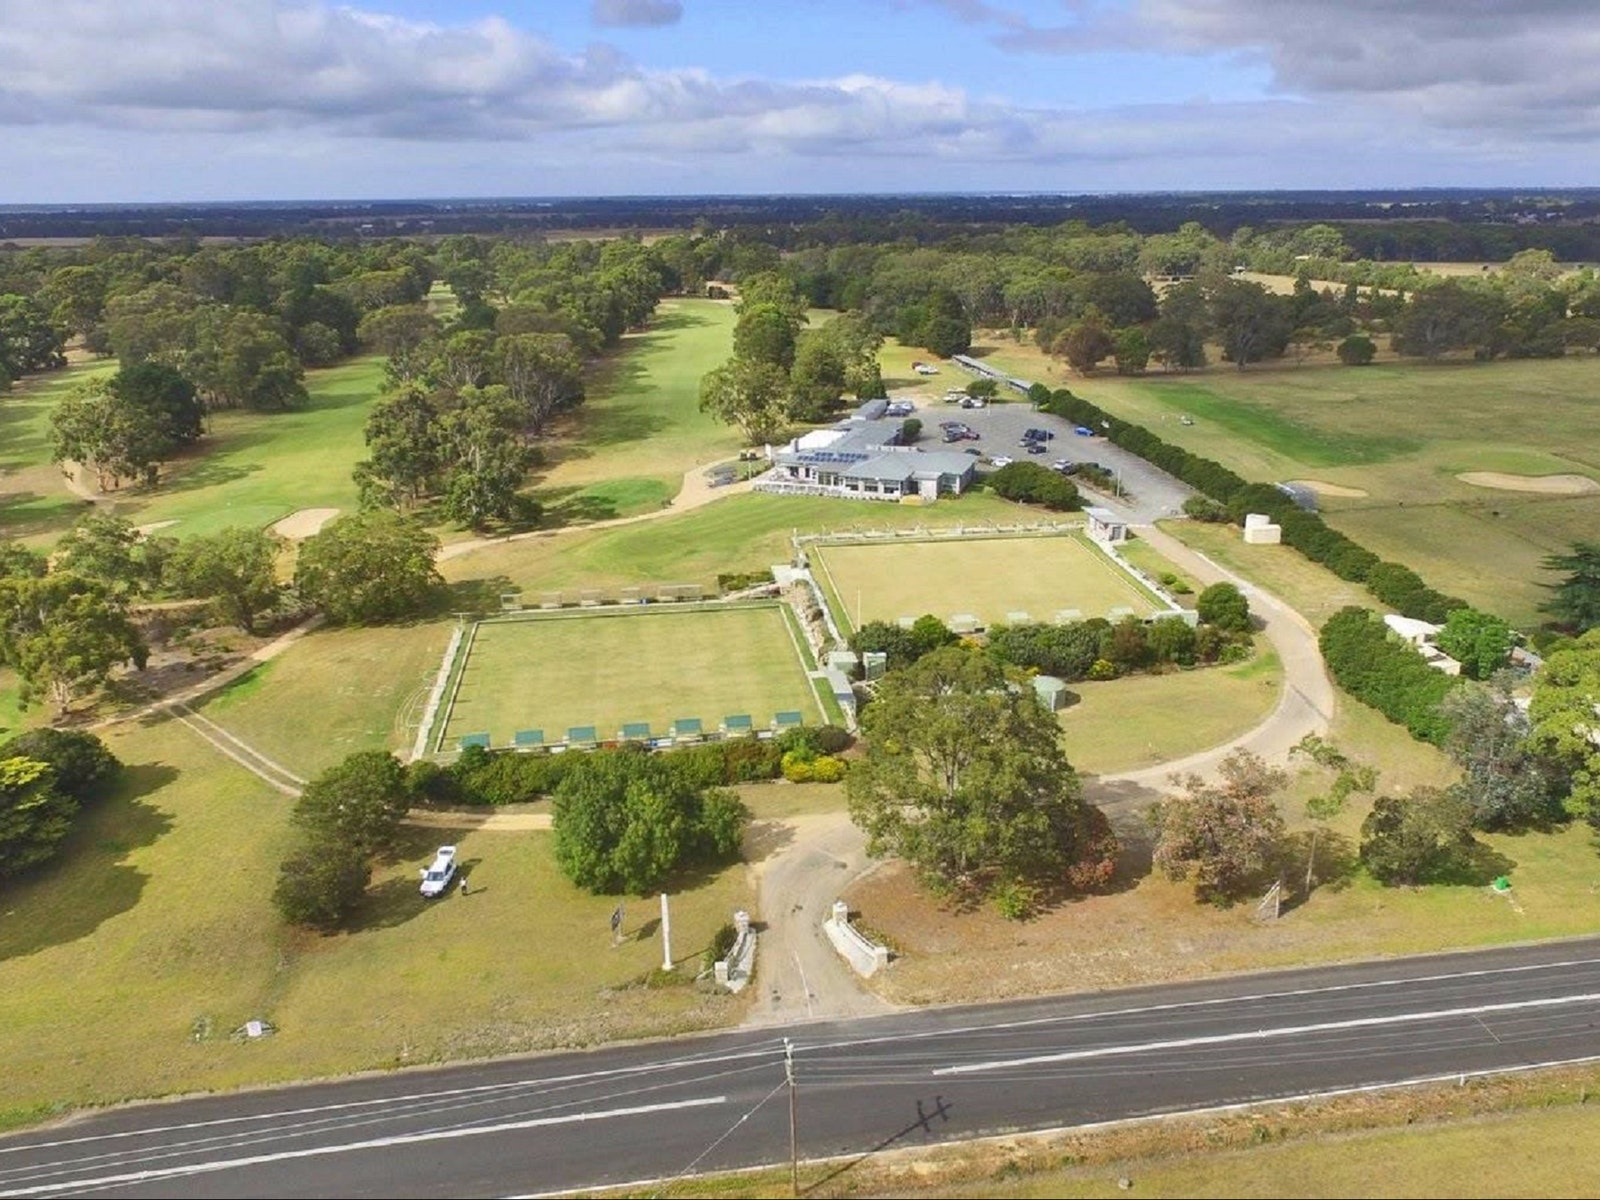 Bairnsdale Golf Club aerial photo showing the course, clubrooms and entry